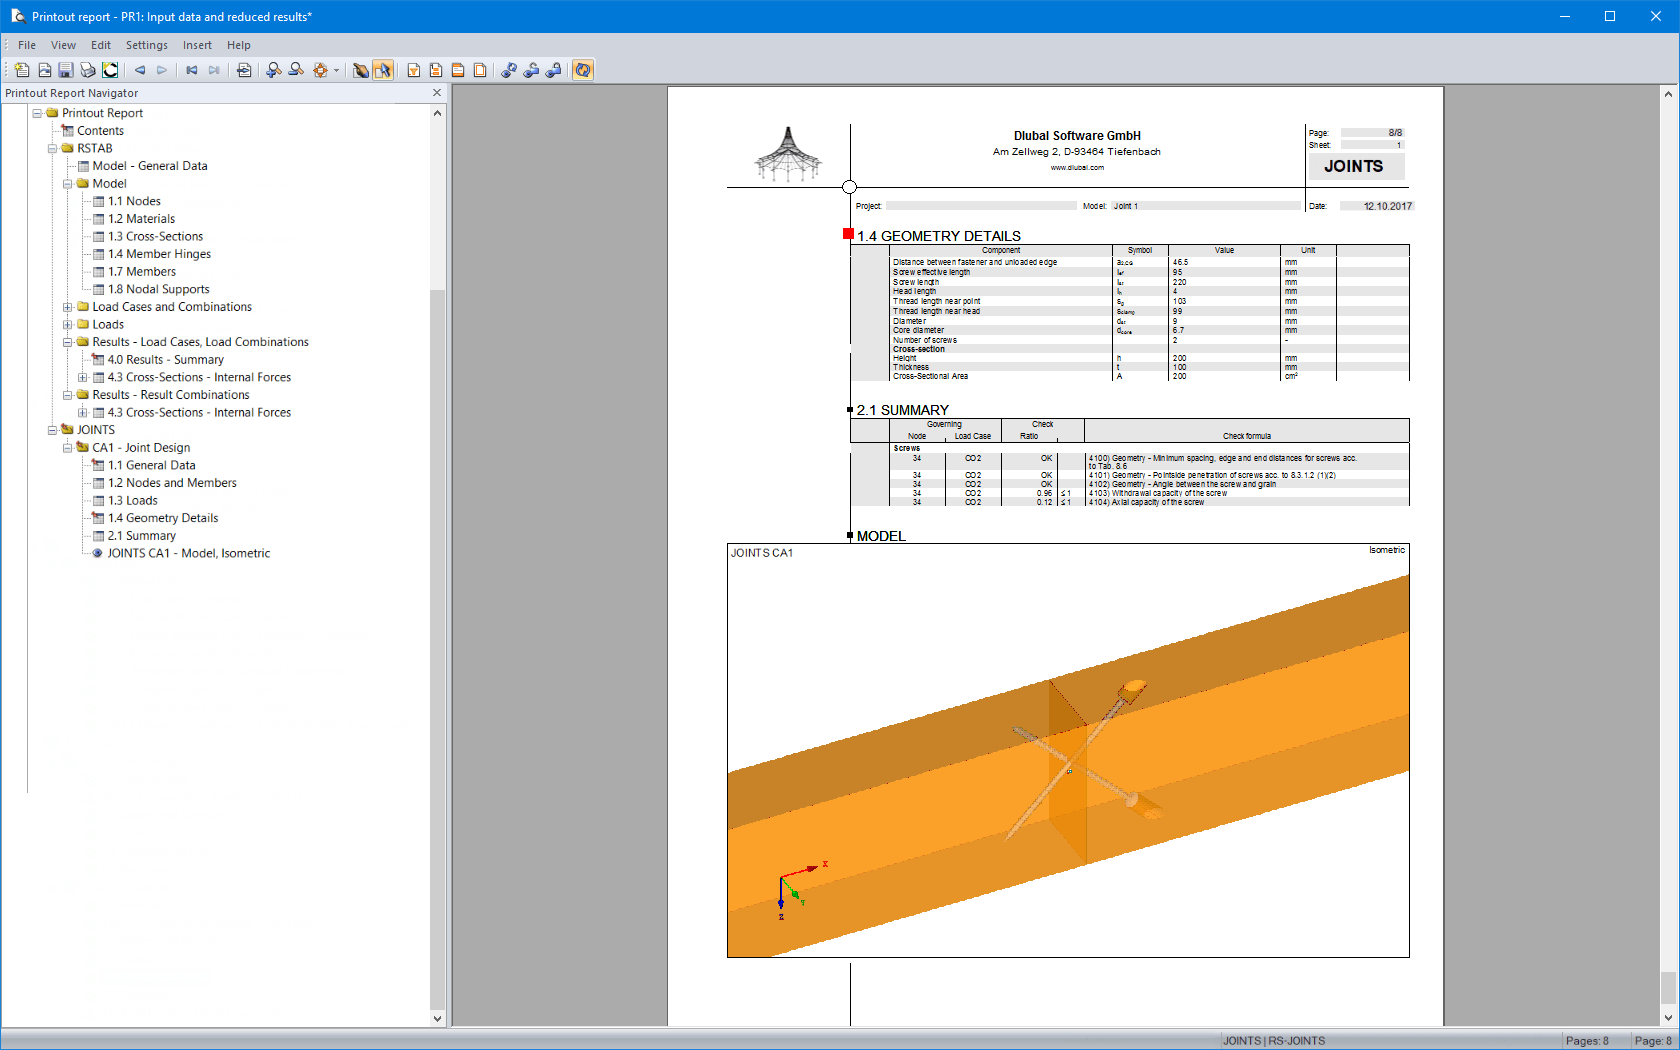 RF-JOINTS Timber - Timber to Timber 5 xx